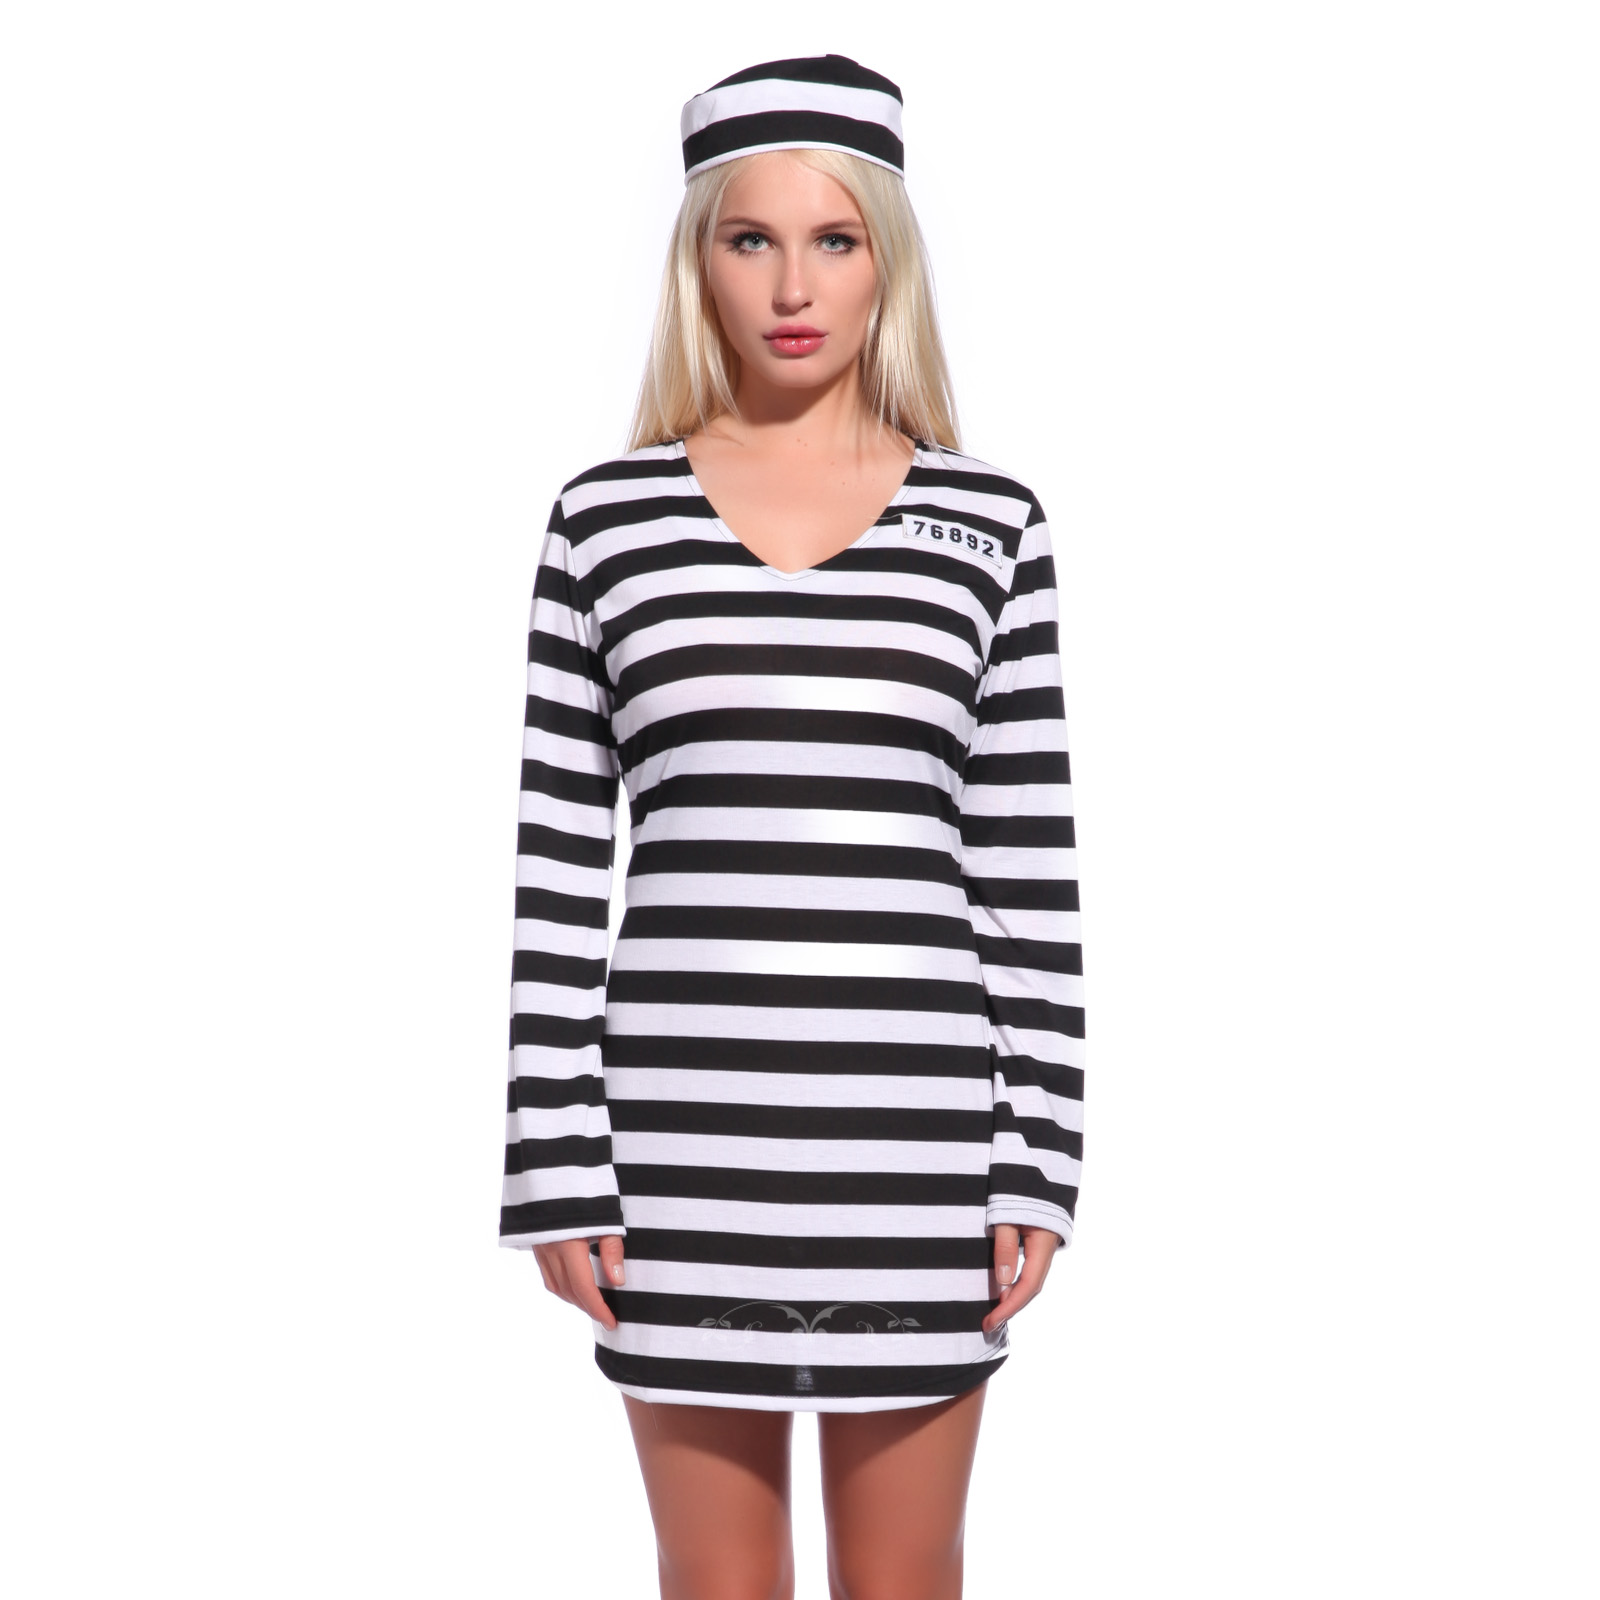 Prisoner fancy dress costume halloween convict jail adult outfit convicts were dressed in black and white striped suits to make escape more difficult as it is difficult for an escaped inmate to avoid recognition and solutioingenieria Gallery